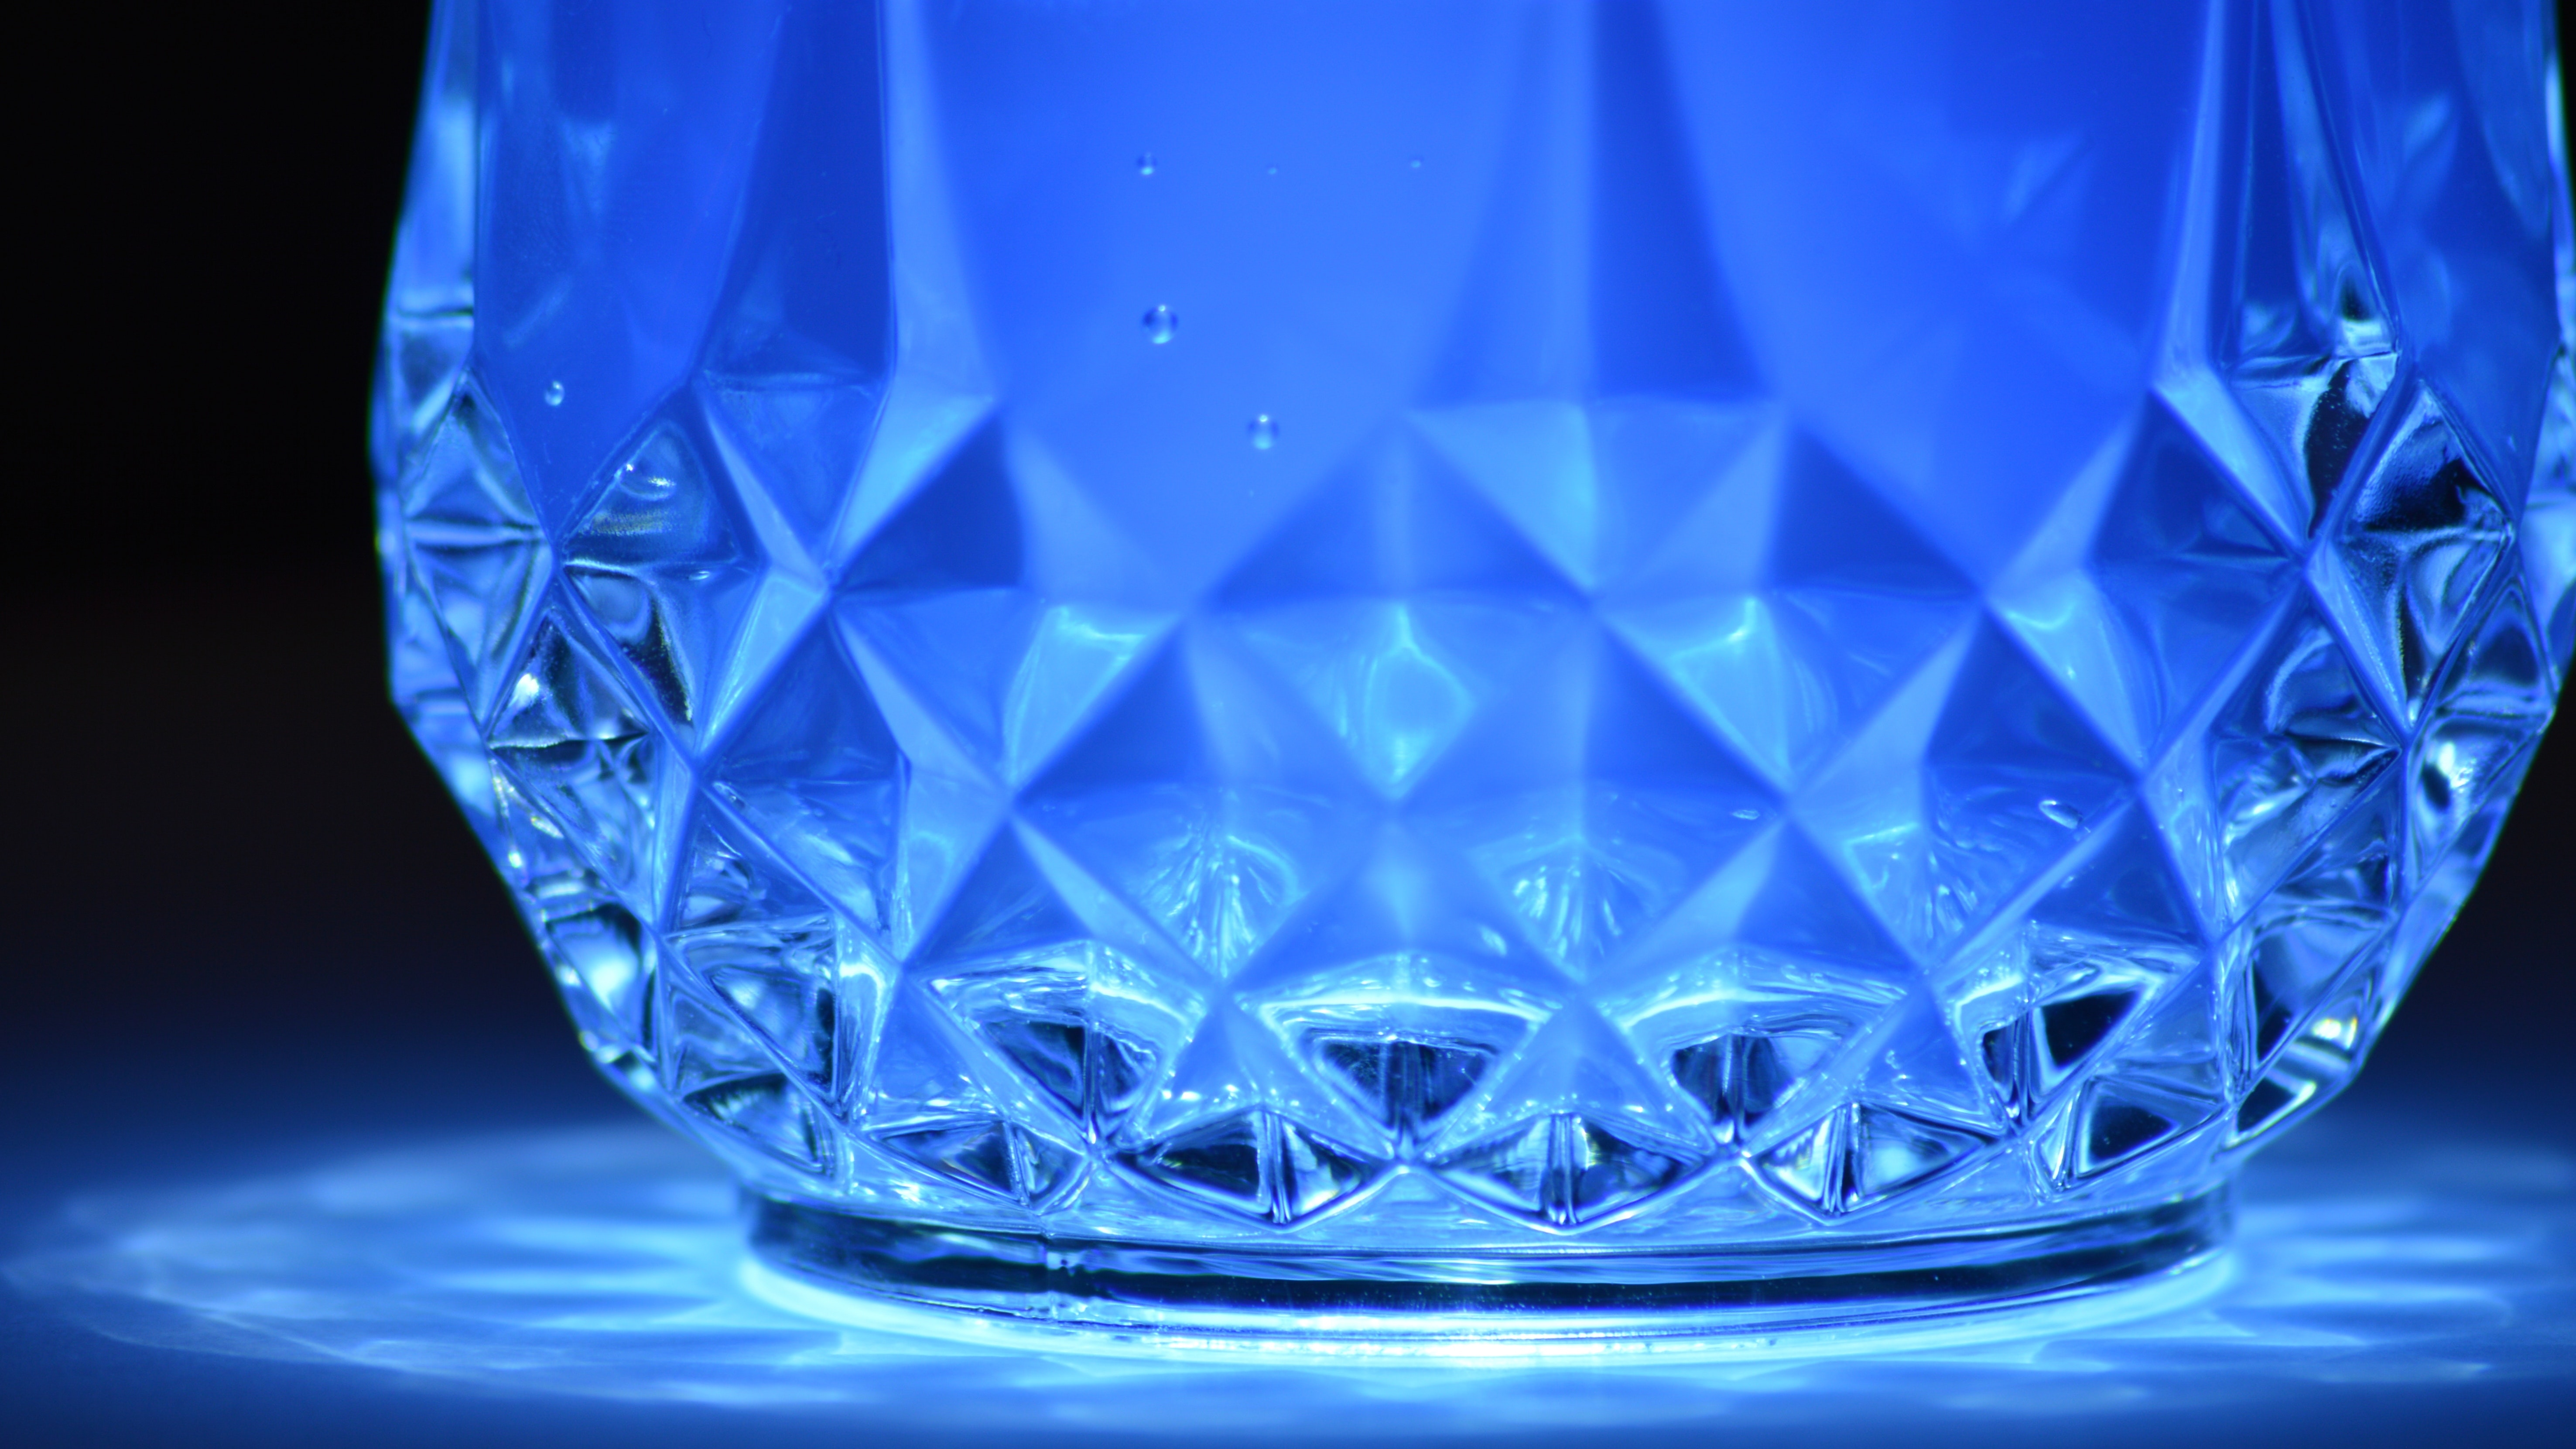 Close-up of blue reflection photo